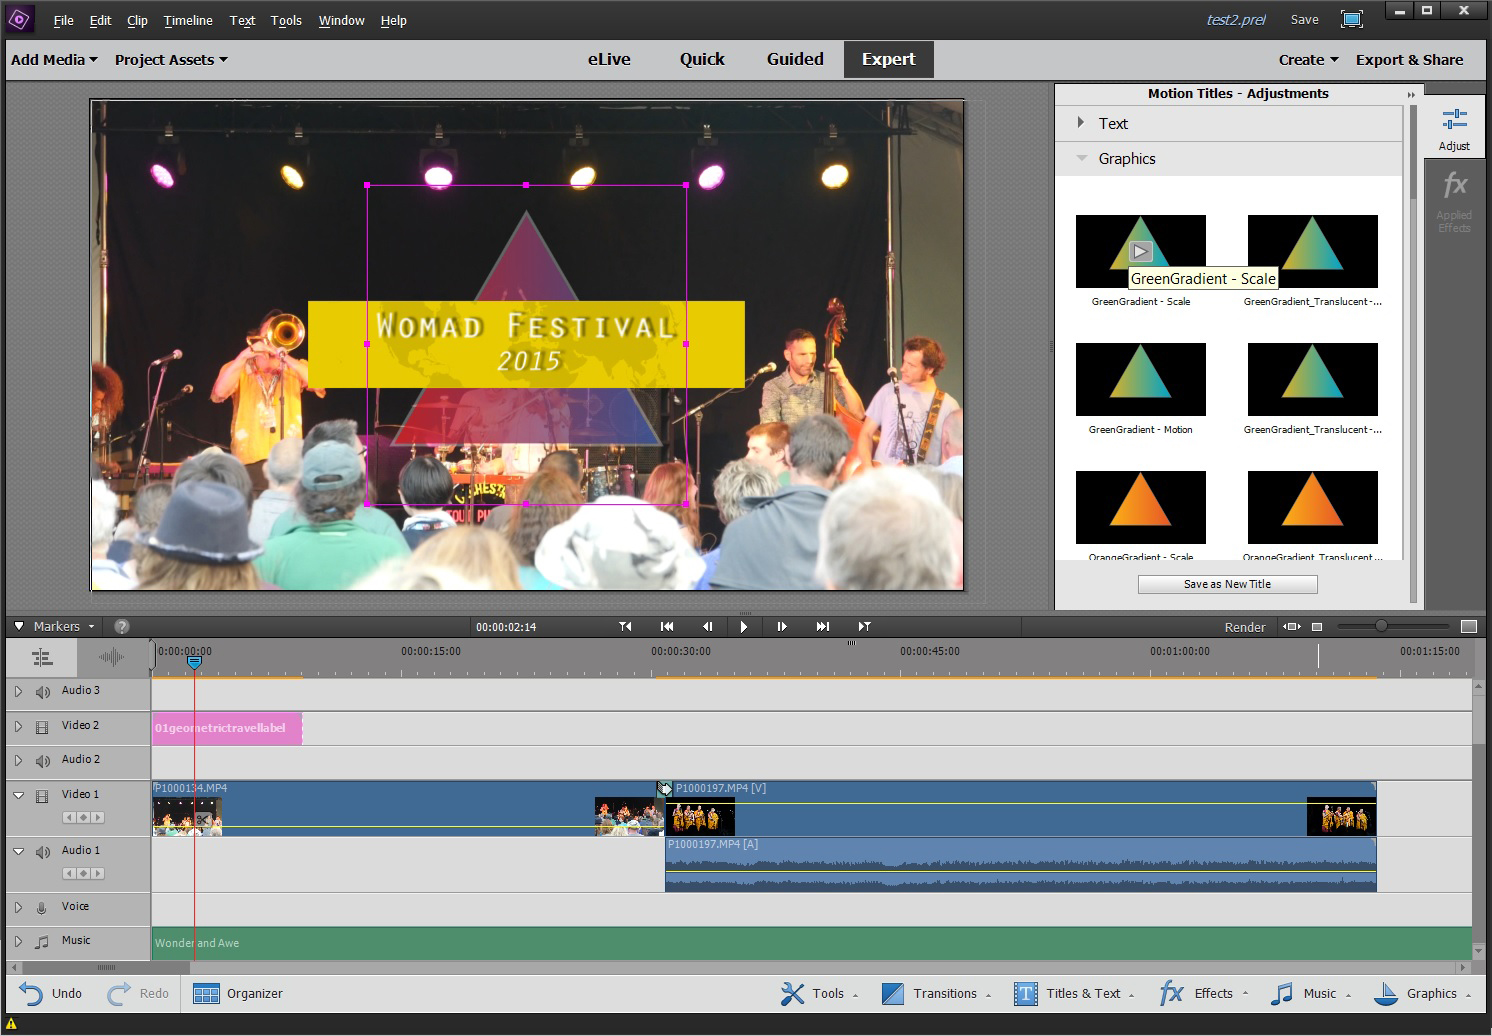 adobe premiere elements 14 review still the best but not perfect